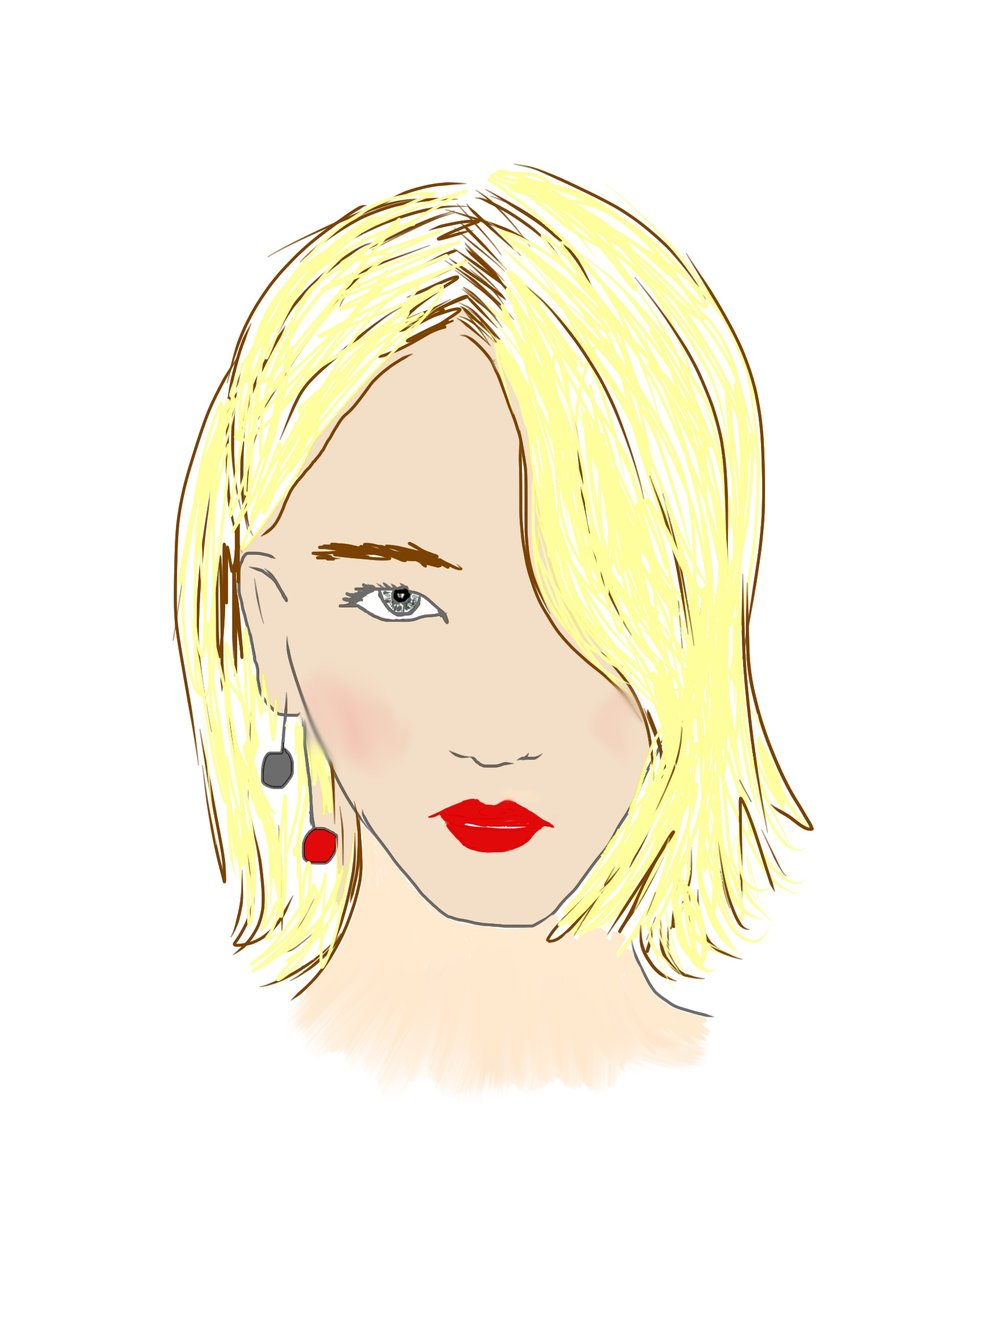 My portrait of the actress Jennifer Lawrence.